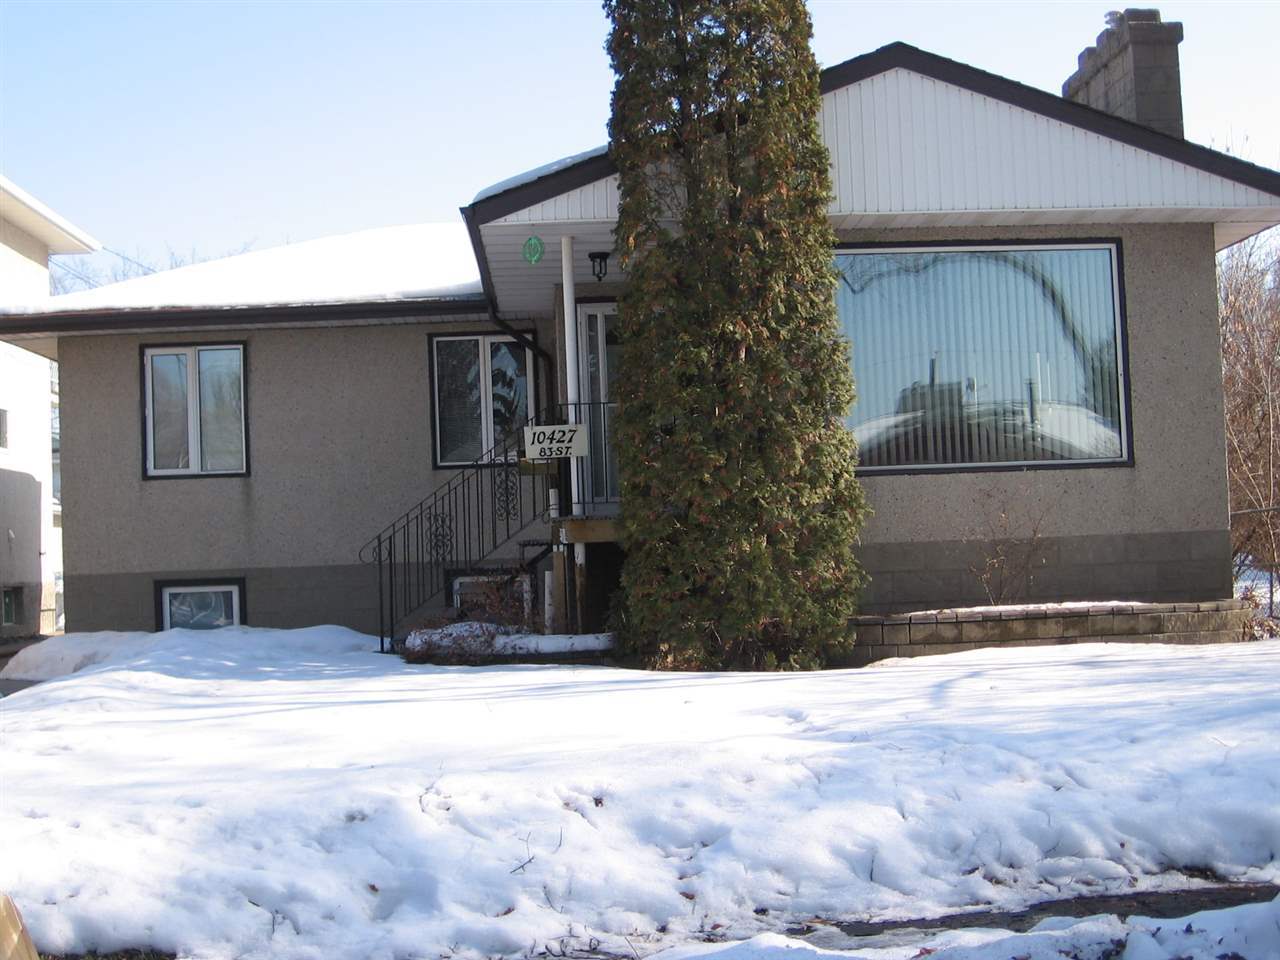 MLS® listing #E4147507 for sale located at 10427 83 Street